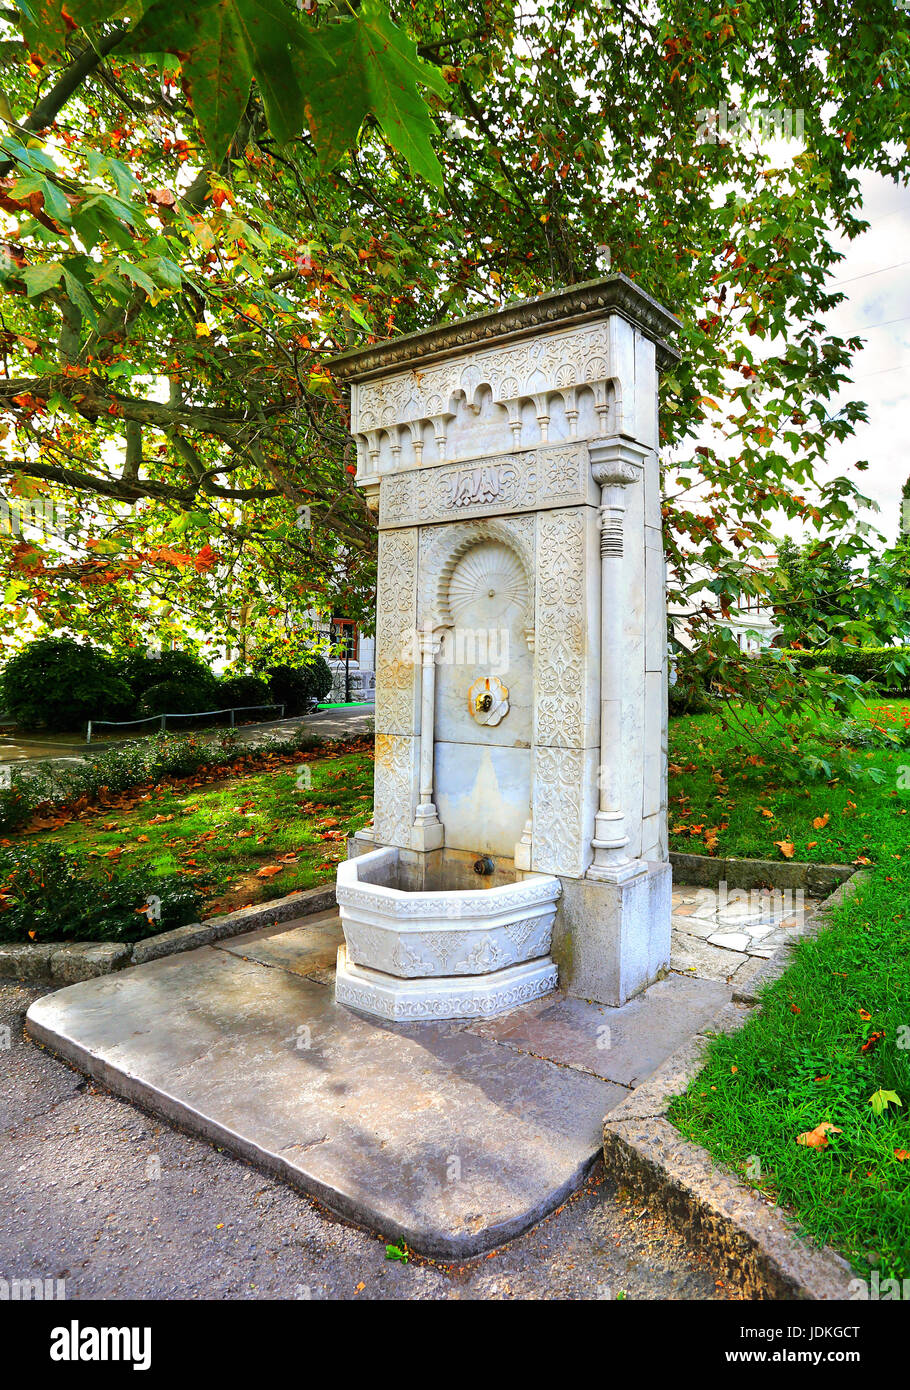 Fountain spring in a Moorish style with stone carvings - Stock Image